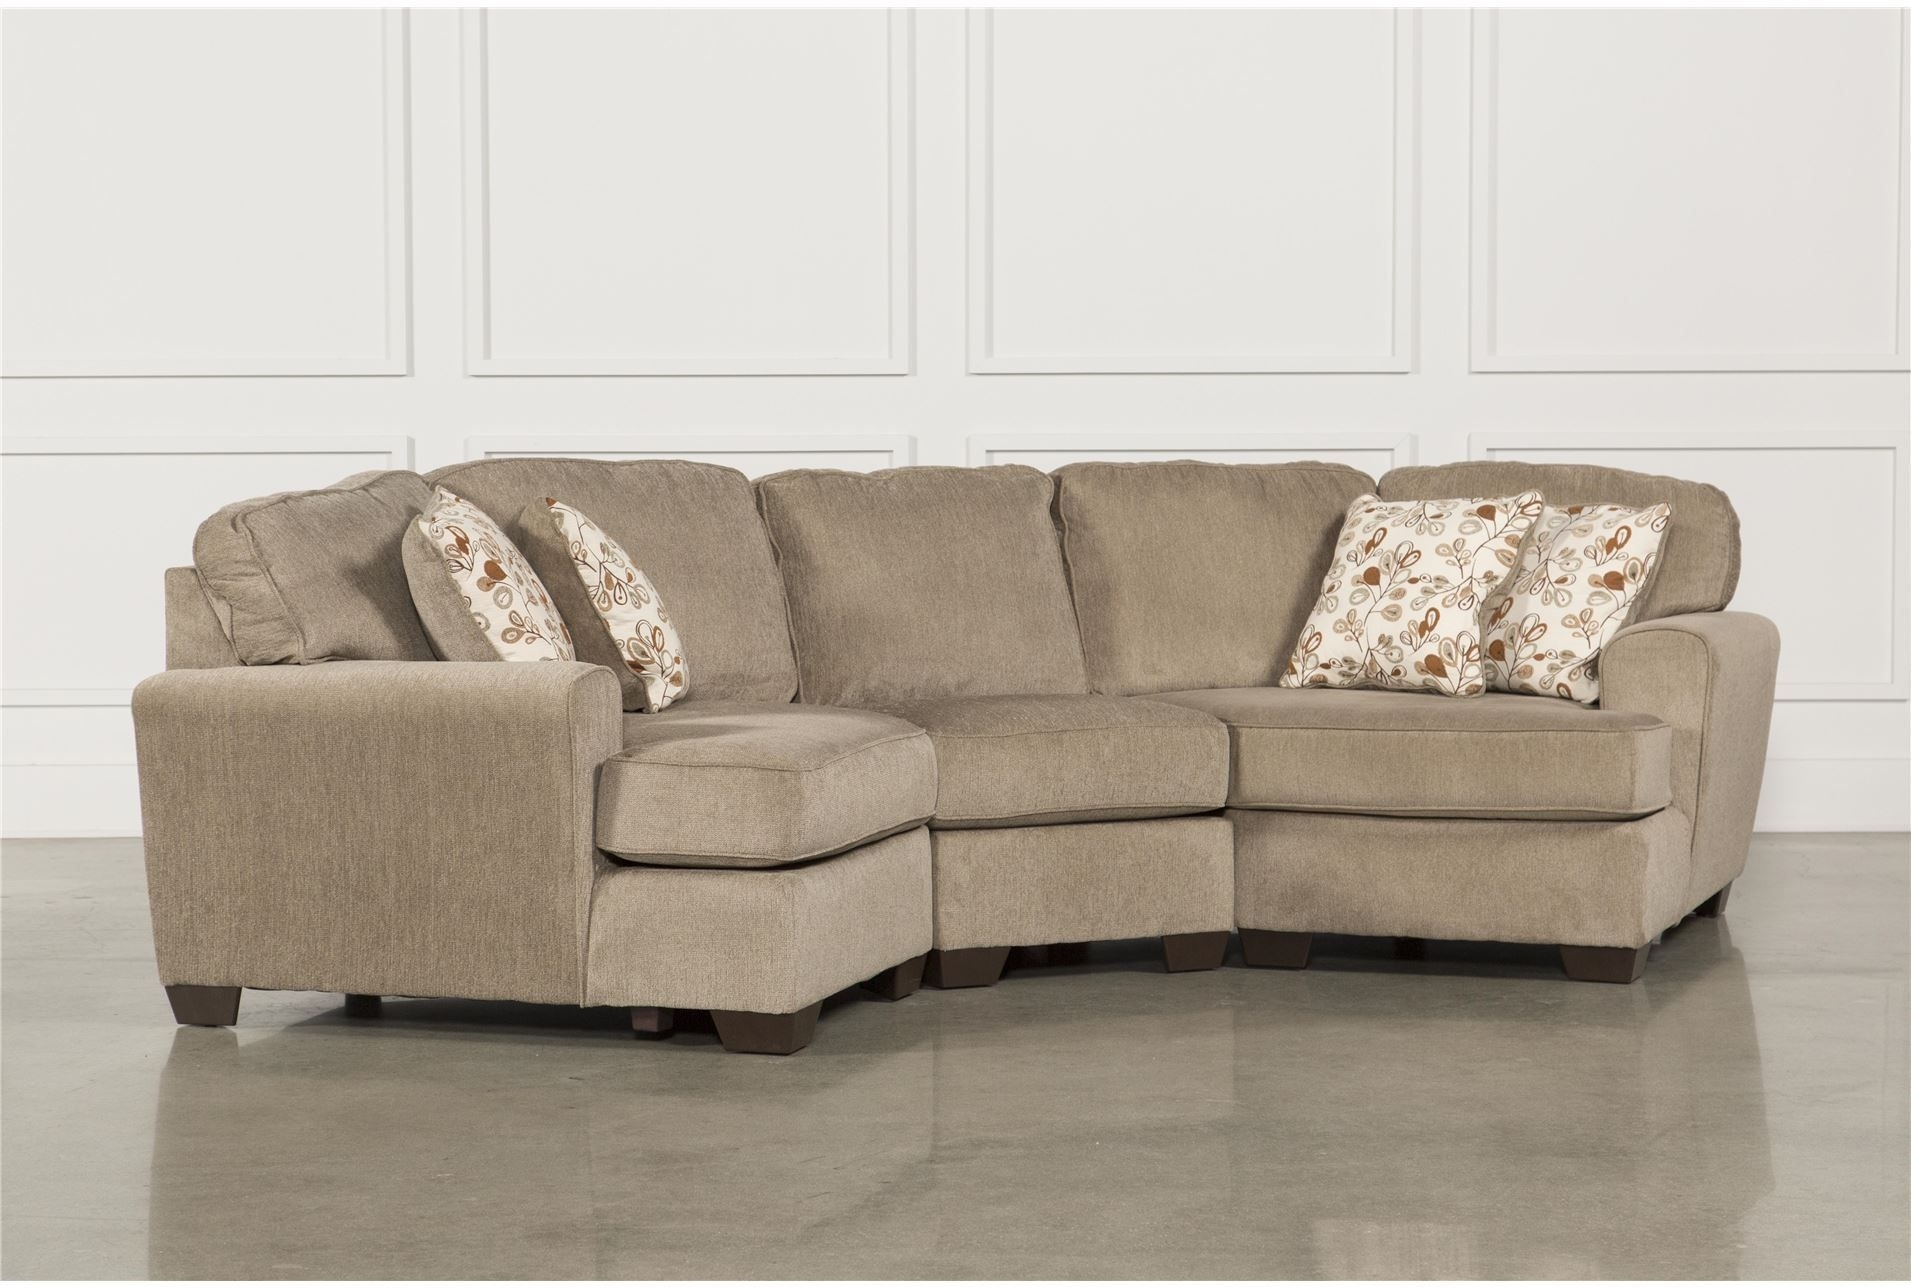 "Patola Park 3 Piece Sectional W/2 Cuddlers Dimensions: 152""w X 49""d For Karen 3 Piece Sectionals (Image 16 of 25)"